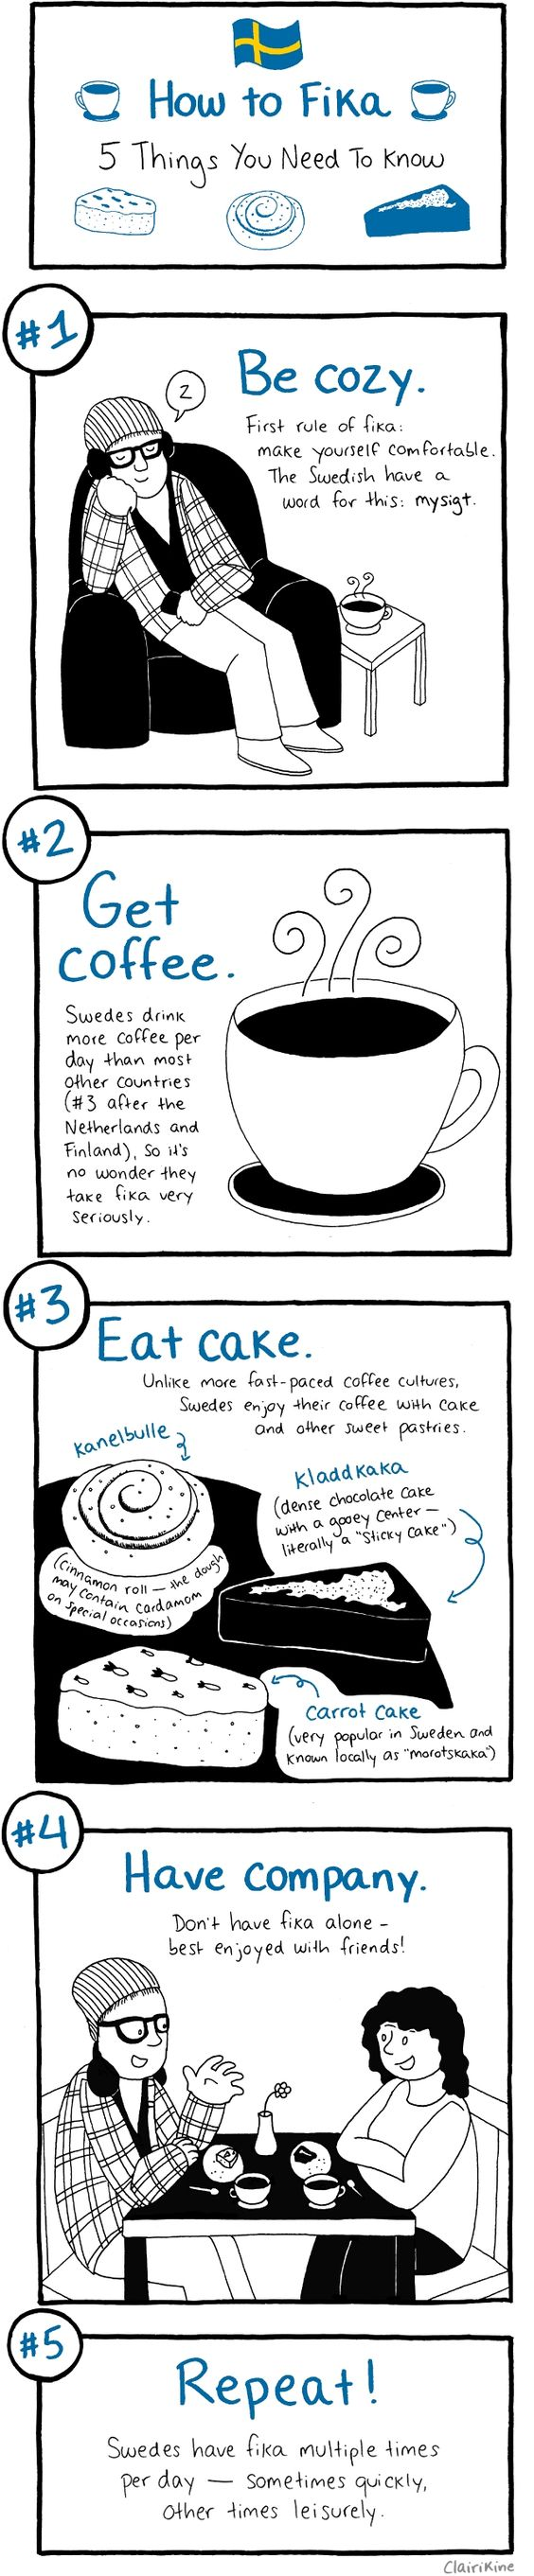 How To Fika – A Swedish (Foodie) Cultural Tradition